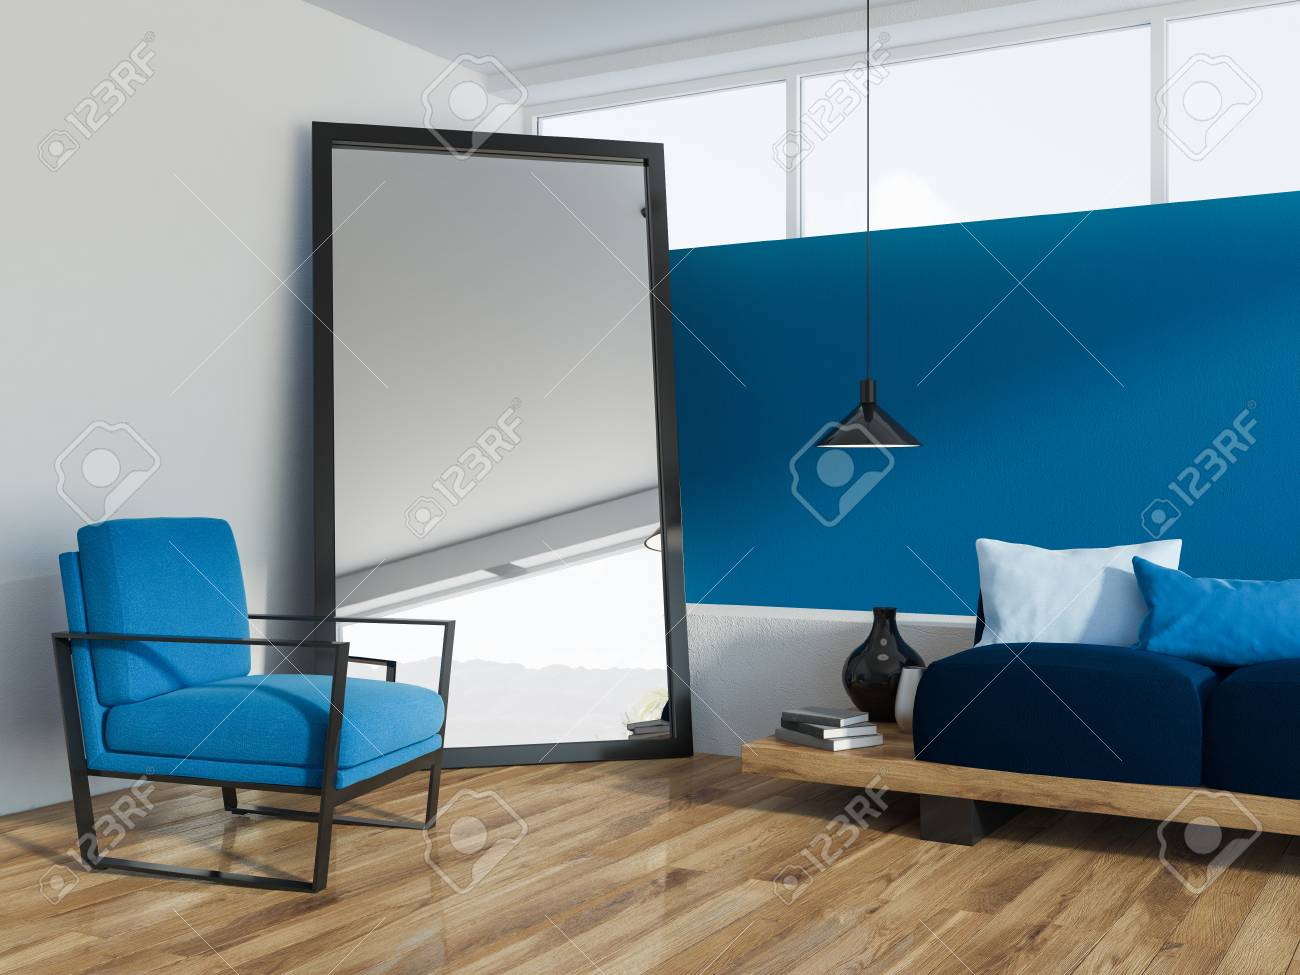 Blue Living Room Corner With A Wooden Floor A Loft Window And Stock Photo Picture And Royalty Free Image Image 106225832